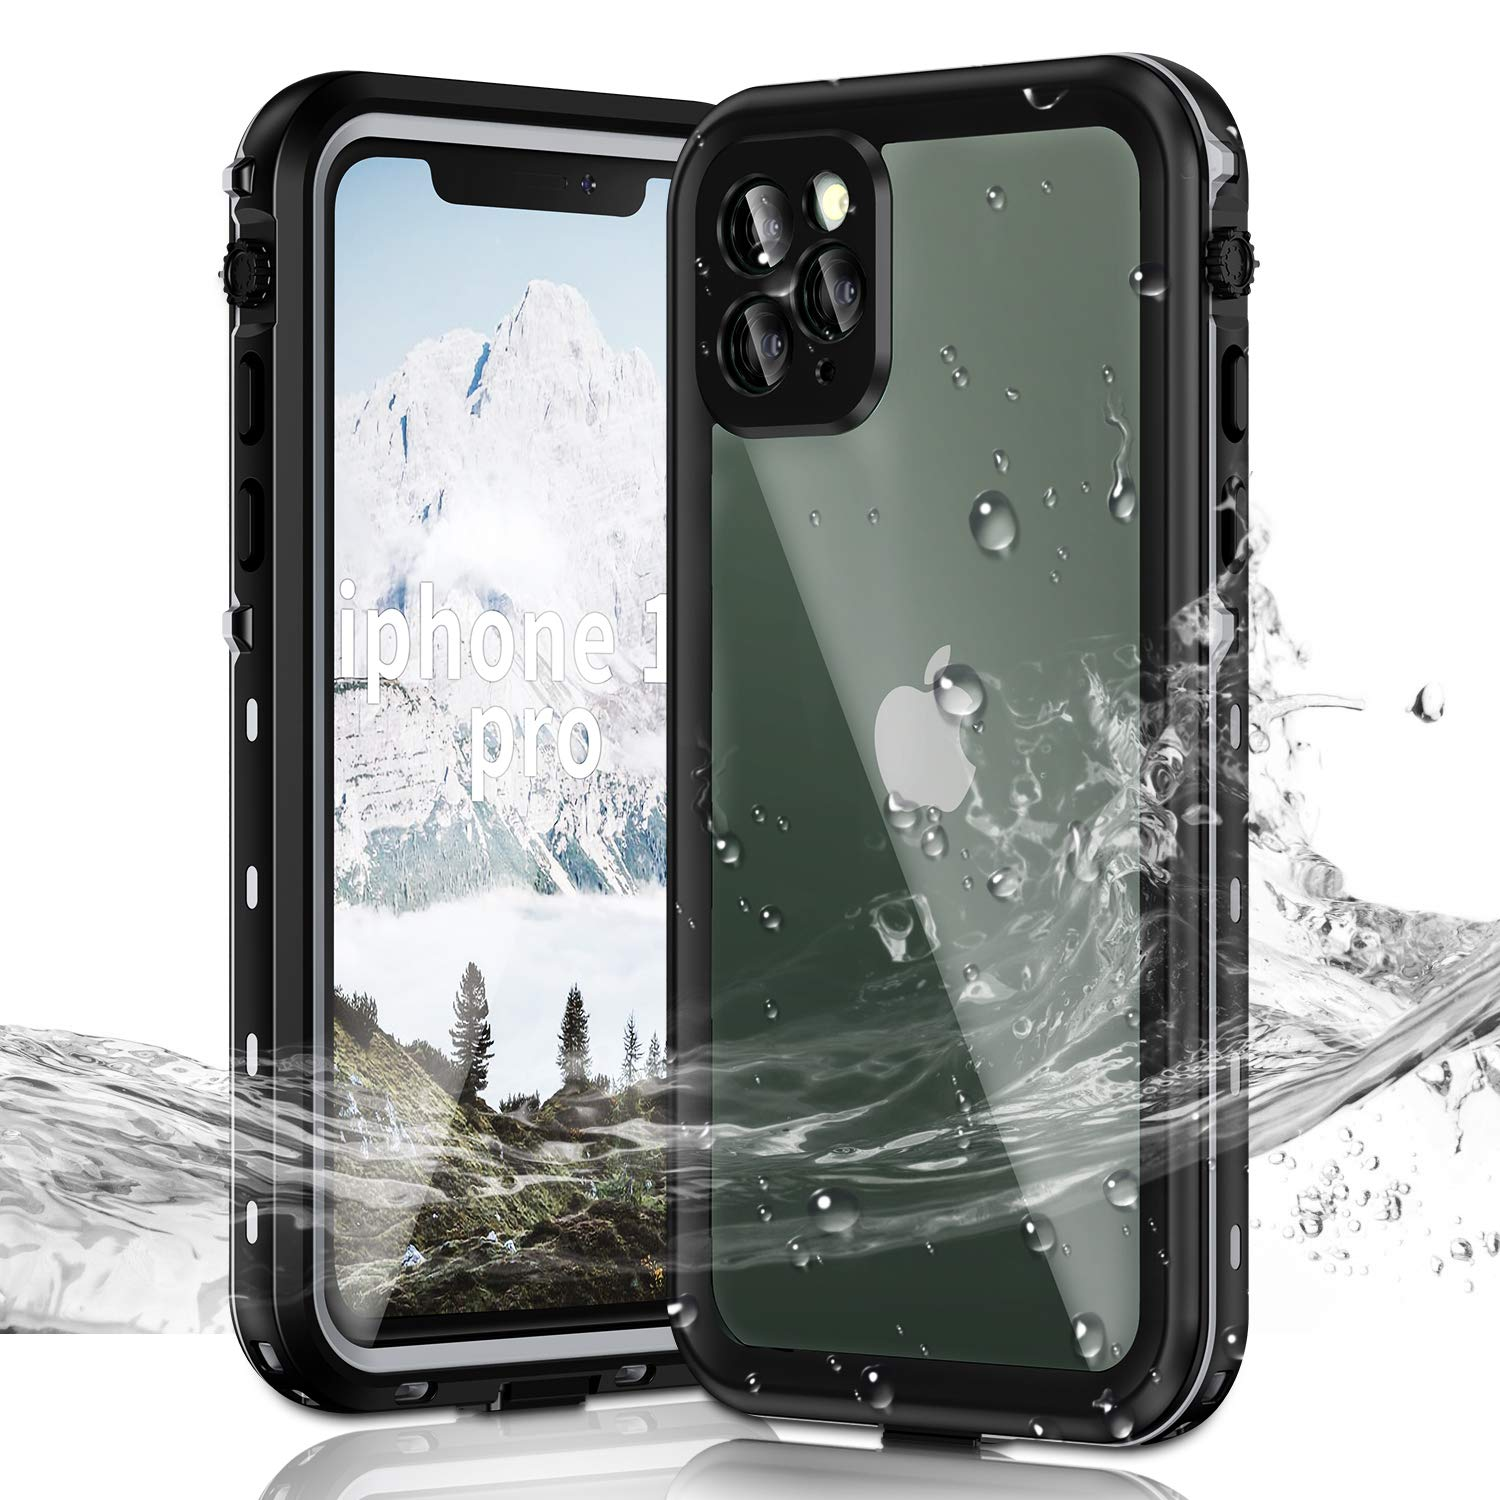 Janazan iPhone 11 Pro Waterproof Case, IP68 Full Sealed Underwater Protective Cover, Waterproof Shockproof Snowproof Dirtproof with Built-in Screen Protector for iPhone 11 Pro 5.8 inch 2019 (Black)